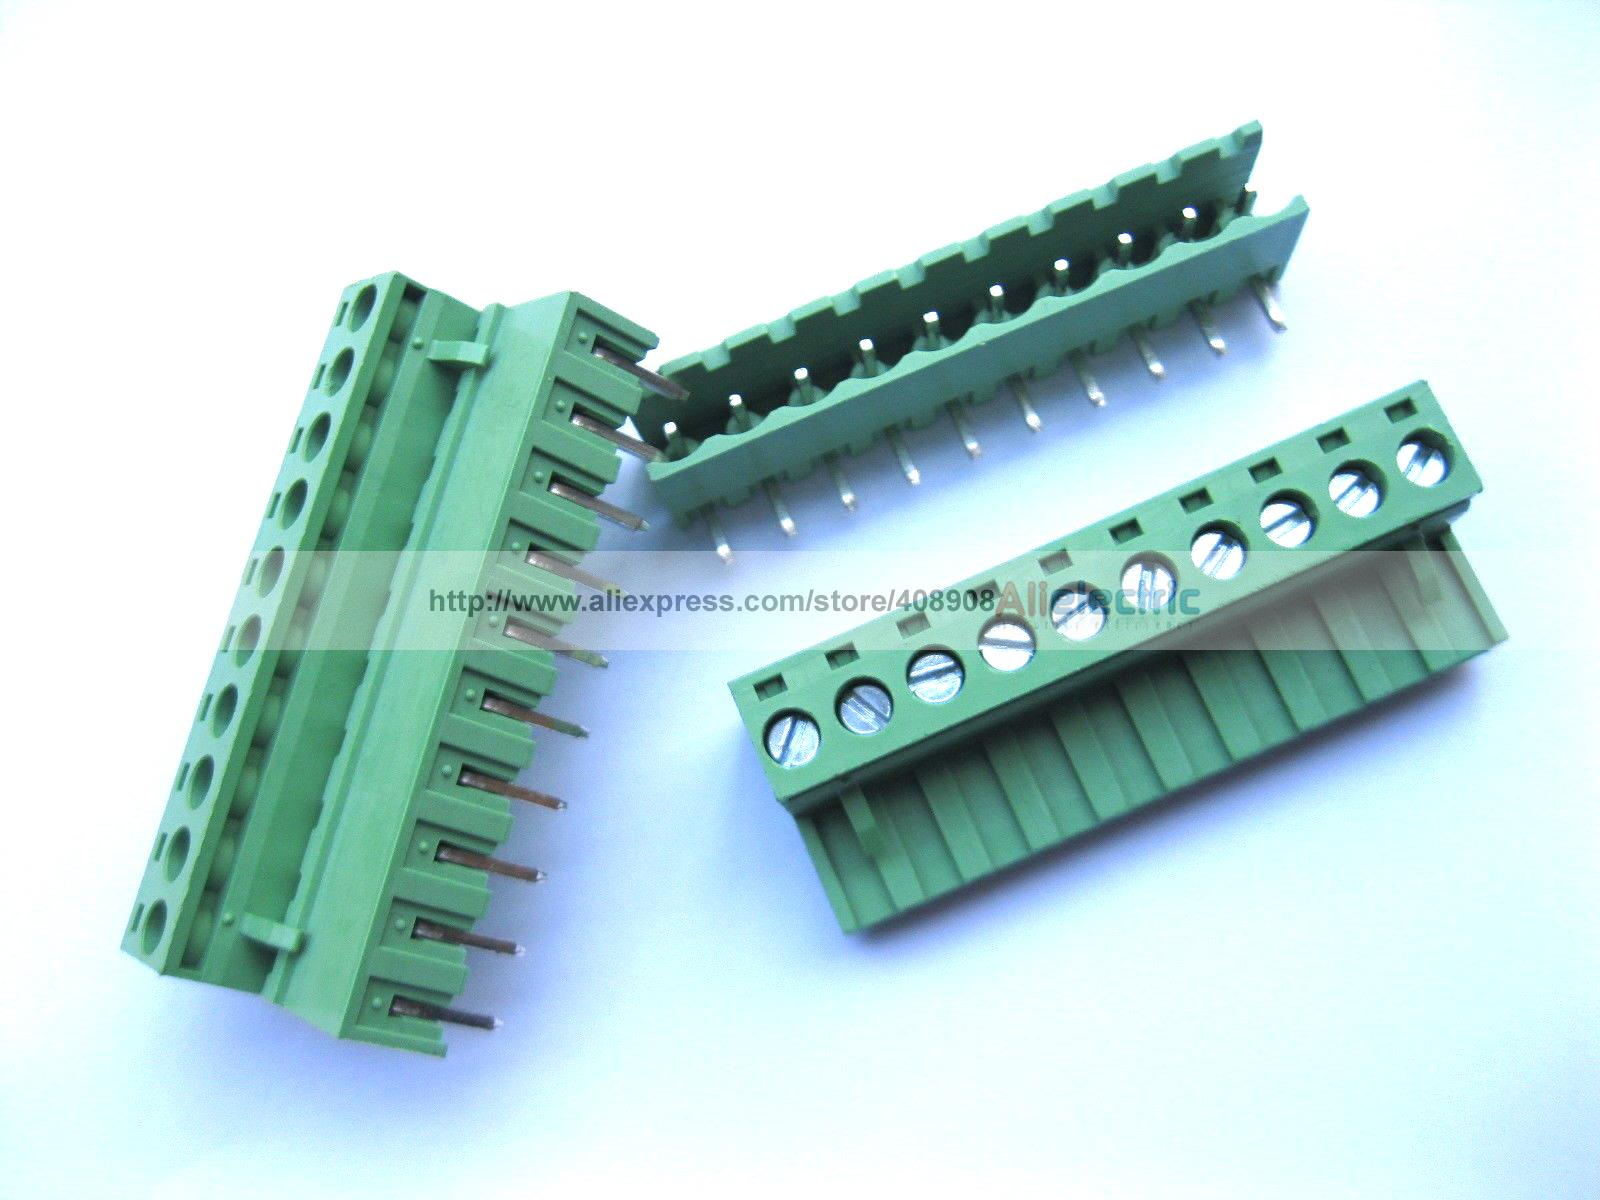 цена на 40 Pcs 5.08mm Angle 10 Pin Screw Terminal Block Connector Pluggable Type Green